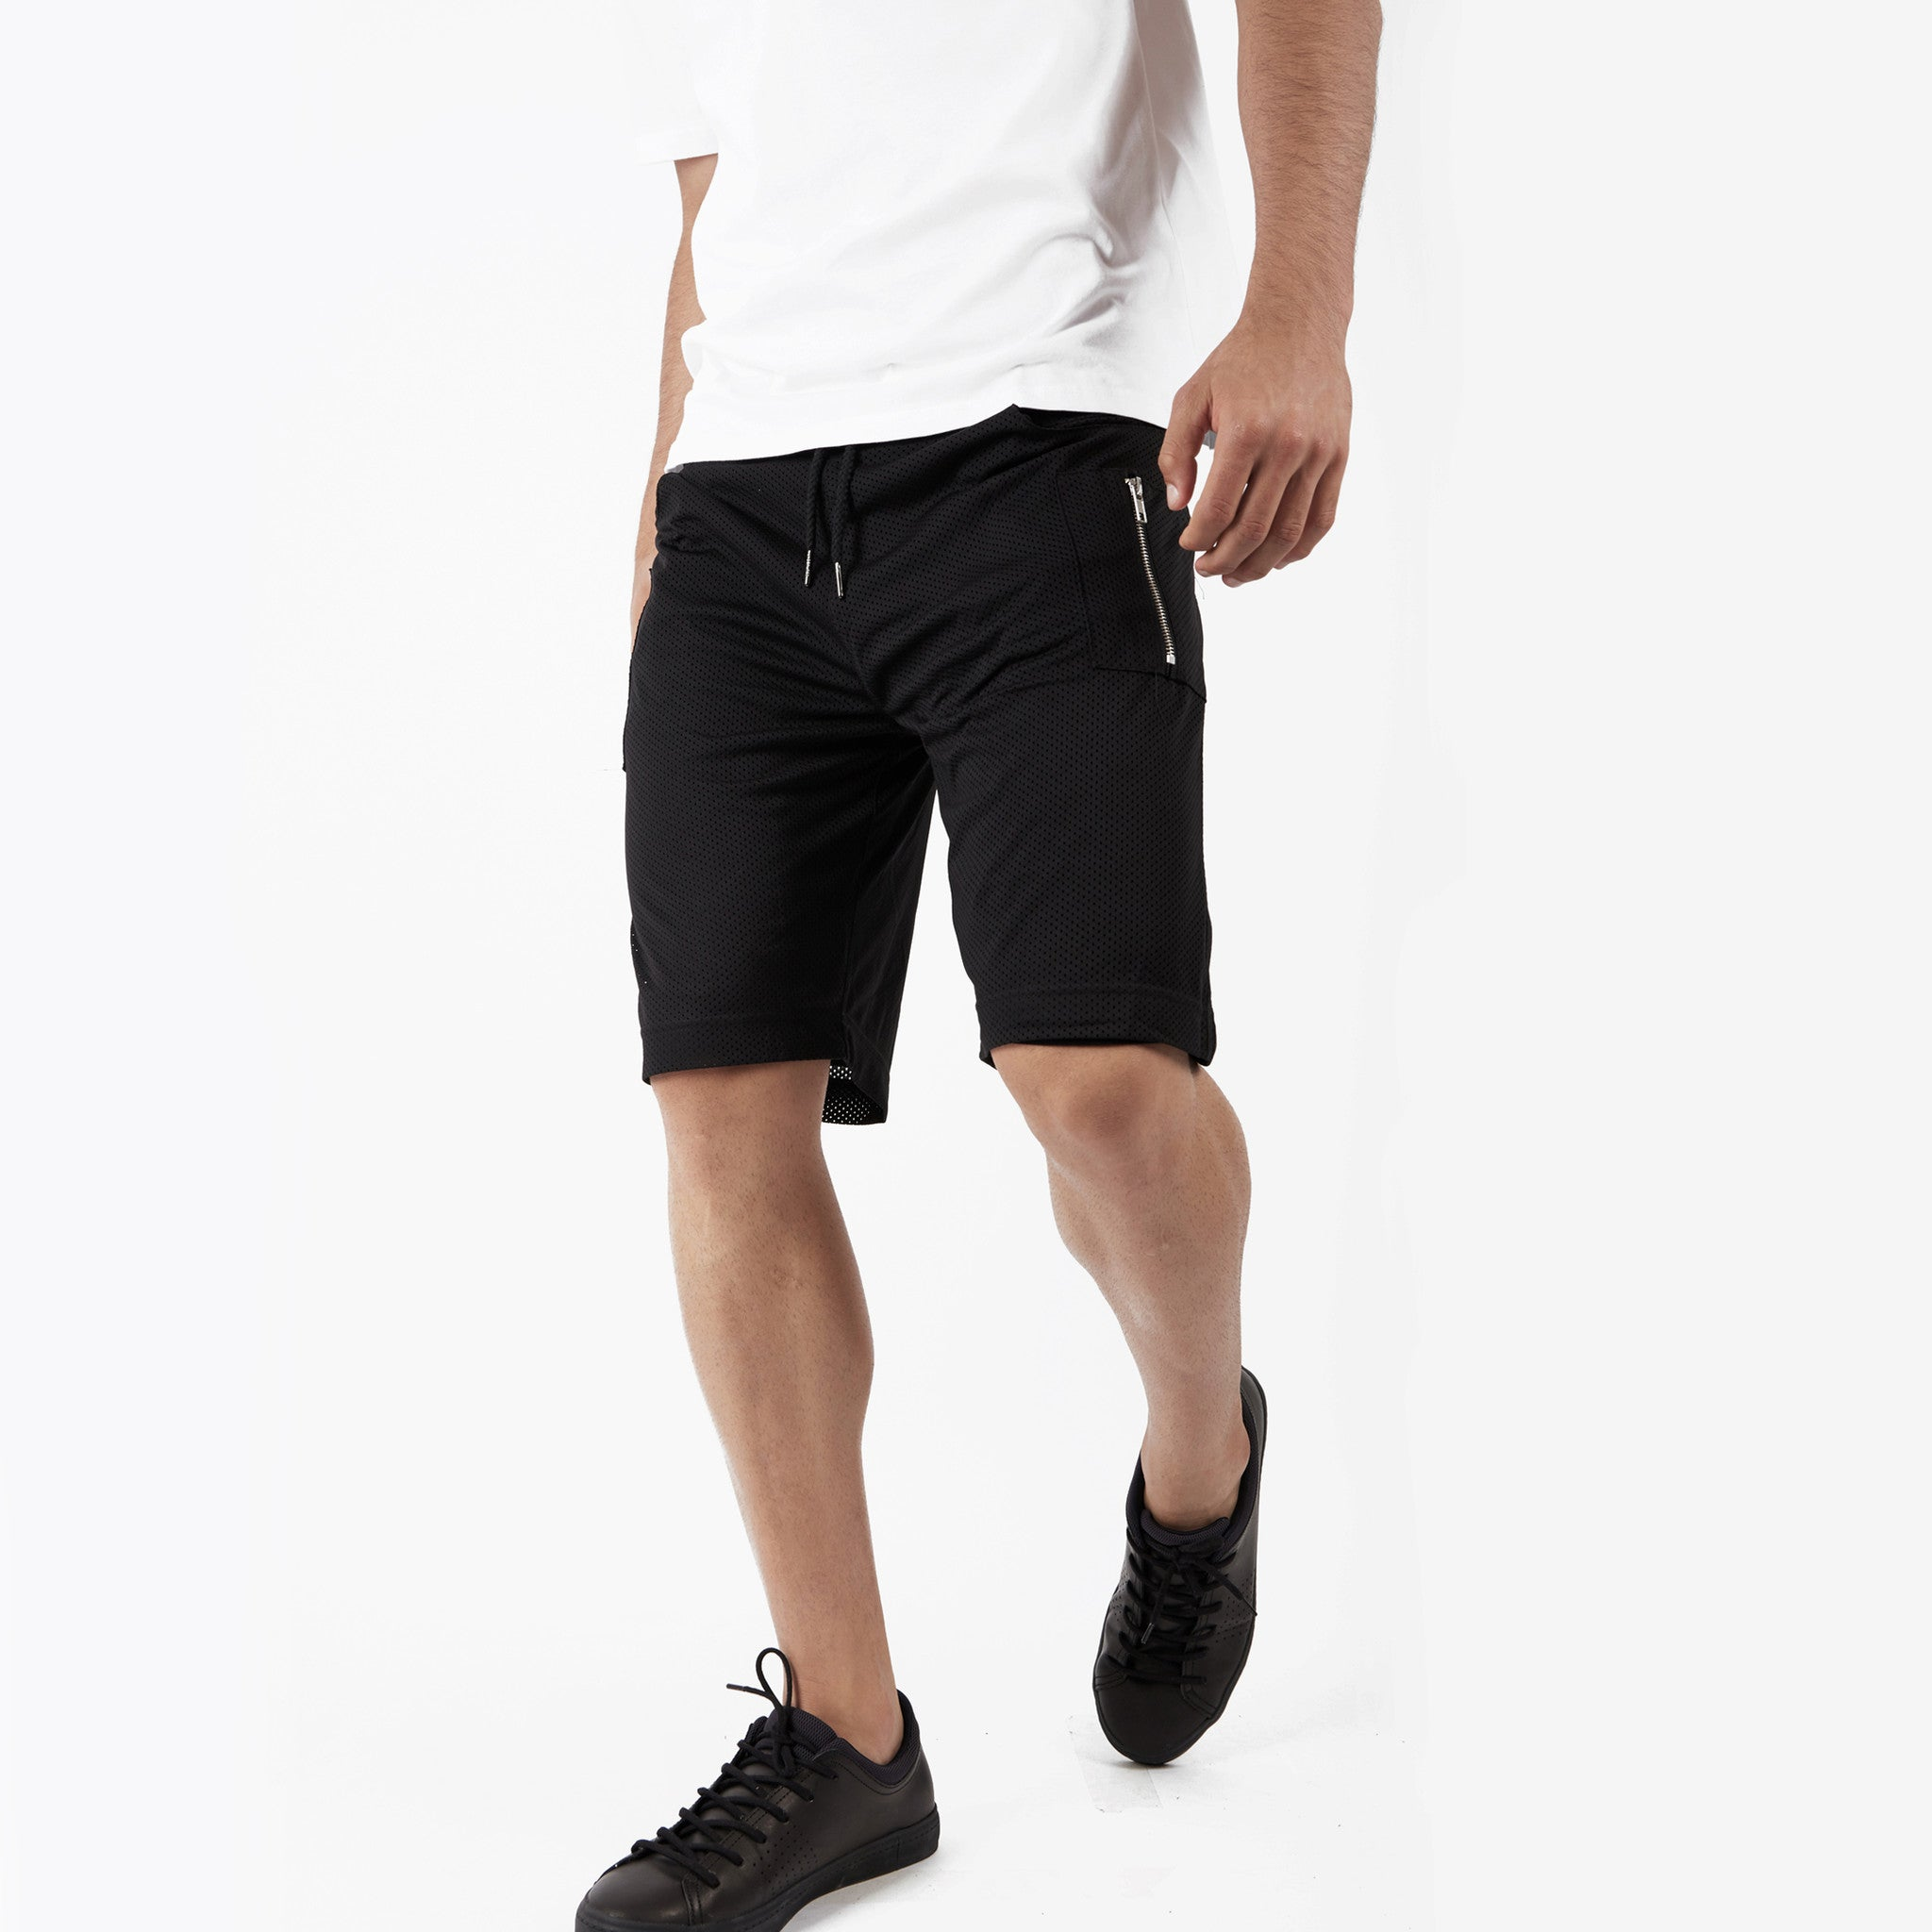 SR283 Utility Airtex Shorts - Black - underated london - underatedco - 7